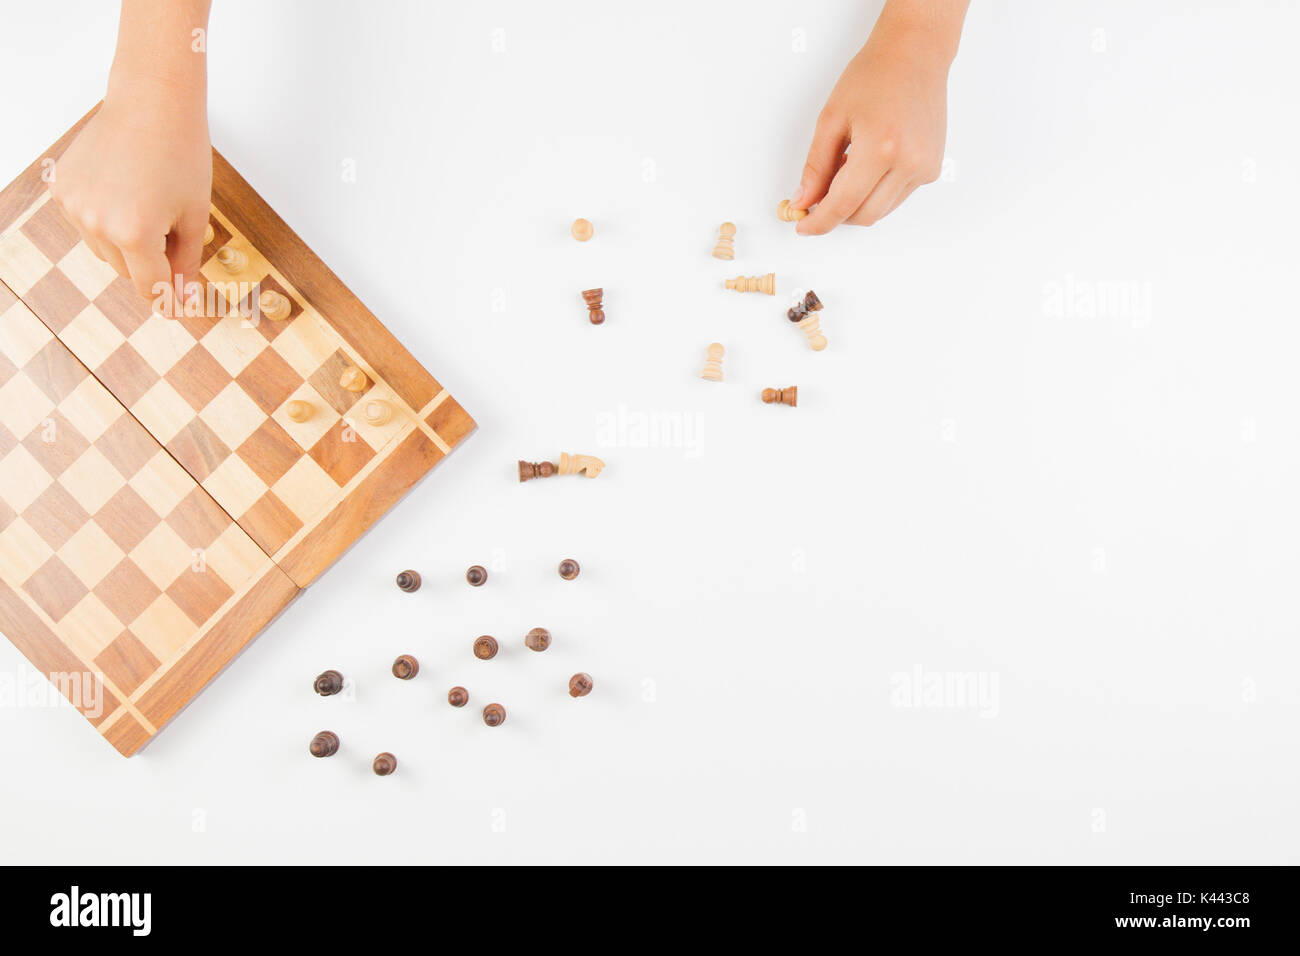 Top view of kid hand and chess board with chess pieces - Stock Image